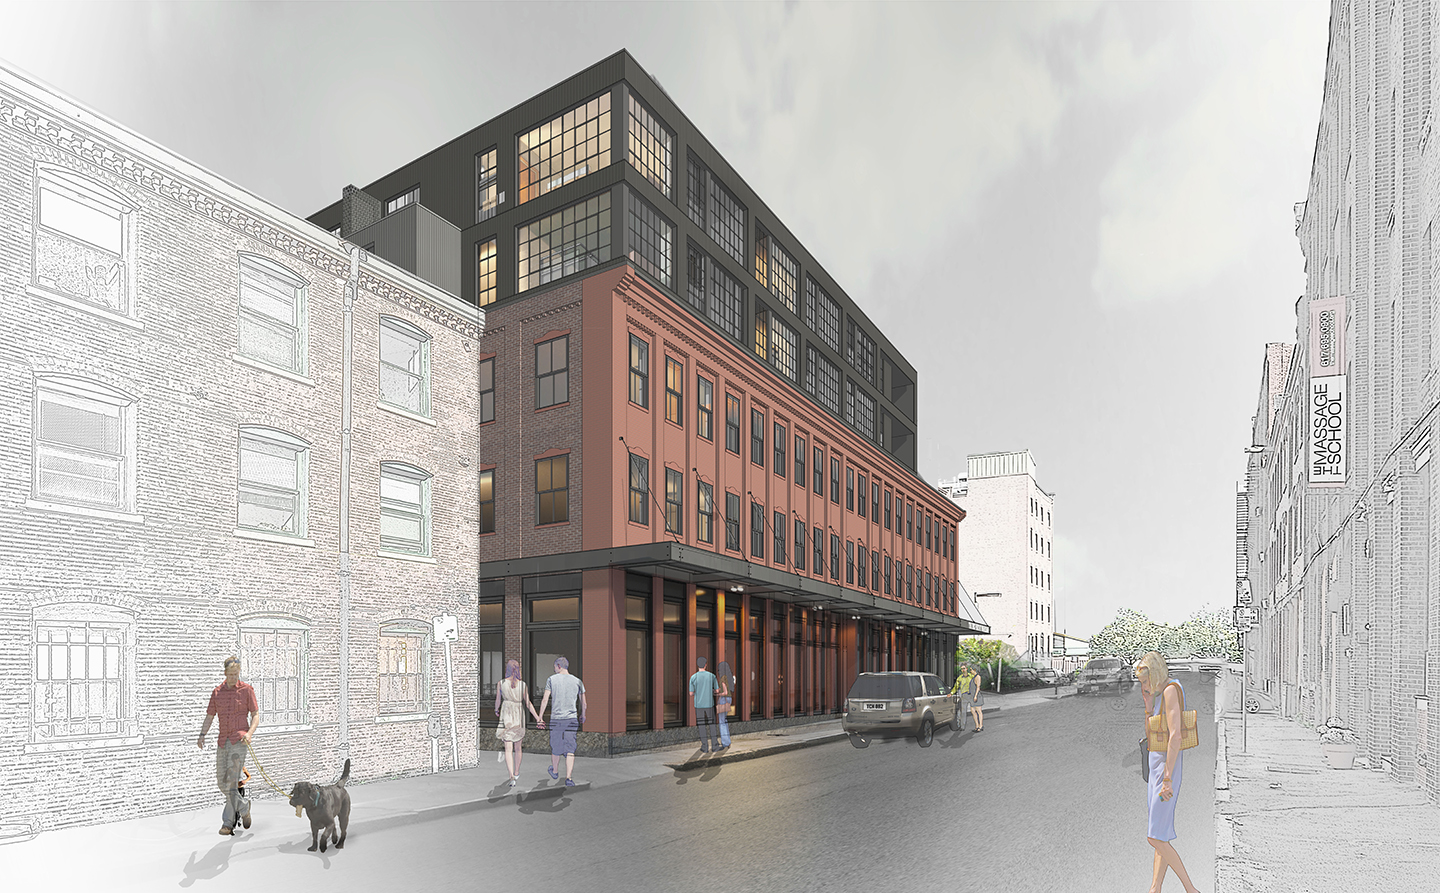 The factory at 46 wareham street south end boston real estate office development construction preservation project the holland companies hacin associates architectural rendering